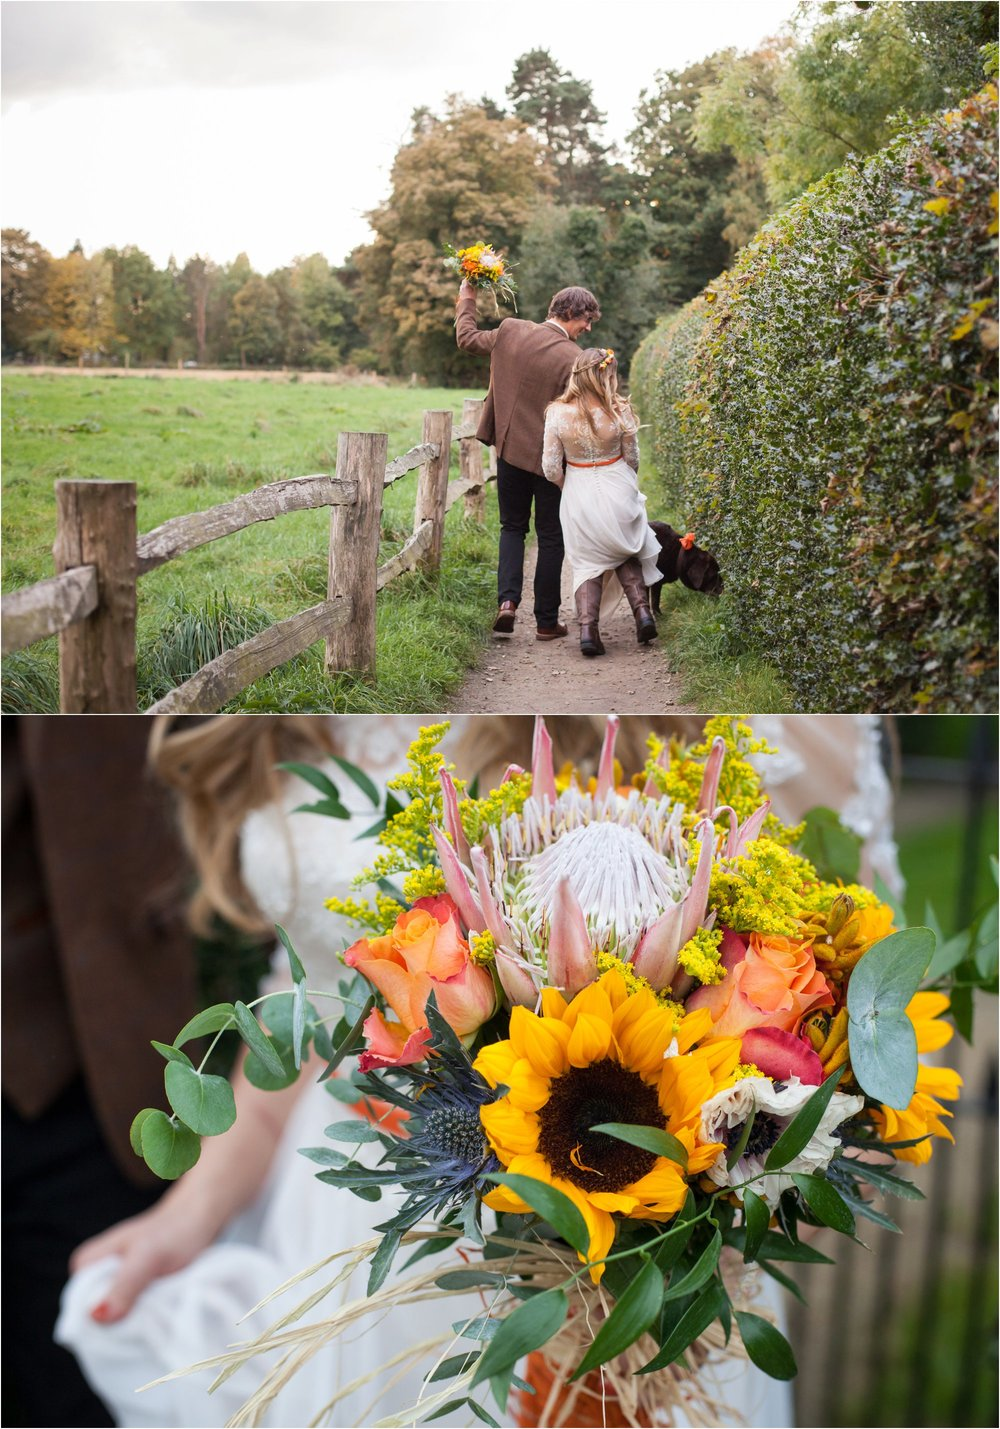 Styal_Wedding_Wilmslow_Cheshire_Autumn_Colourful_photography_0107.jpg